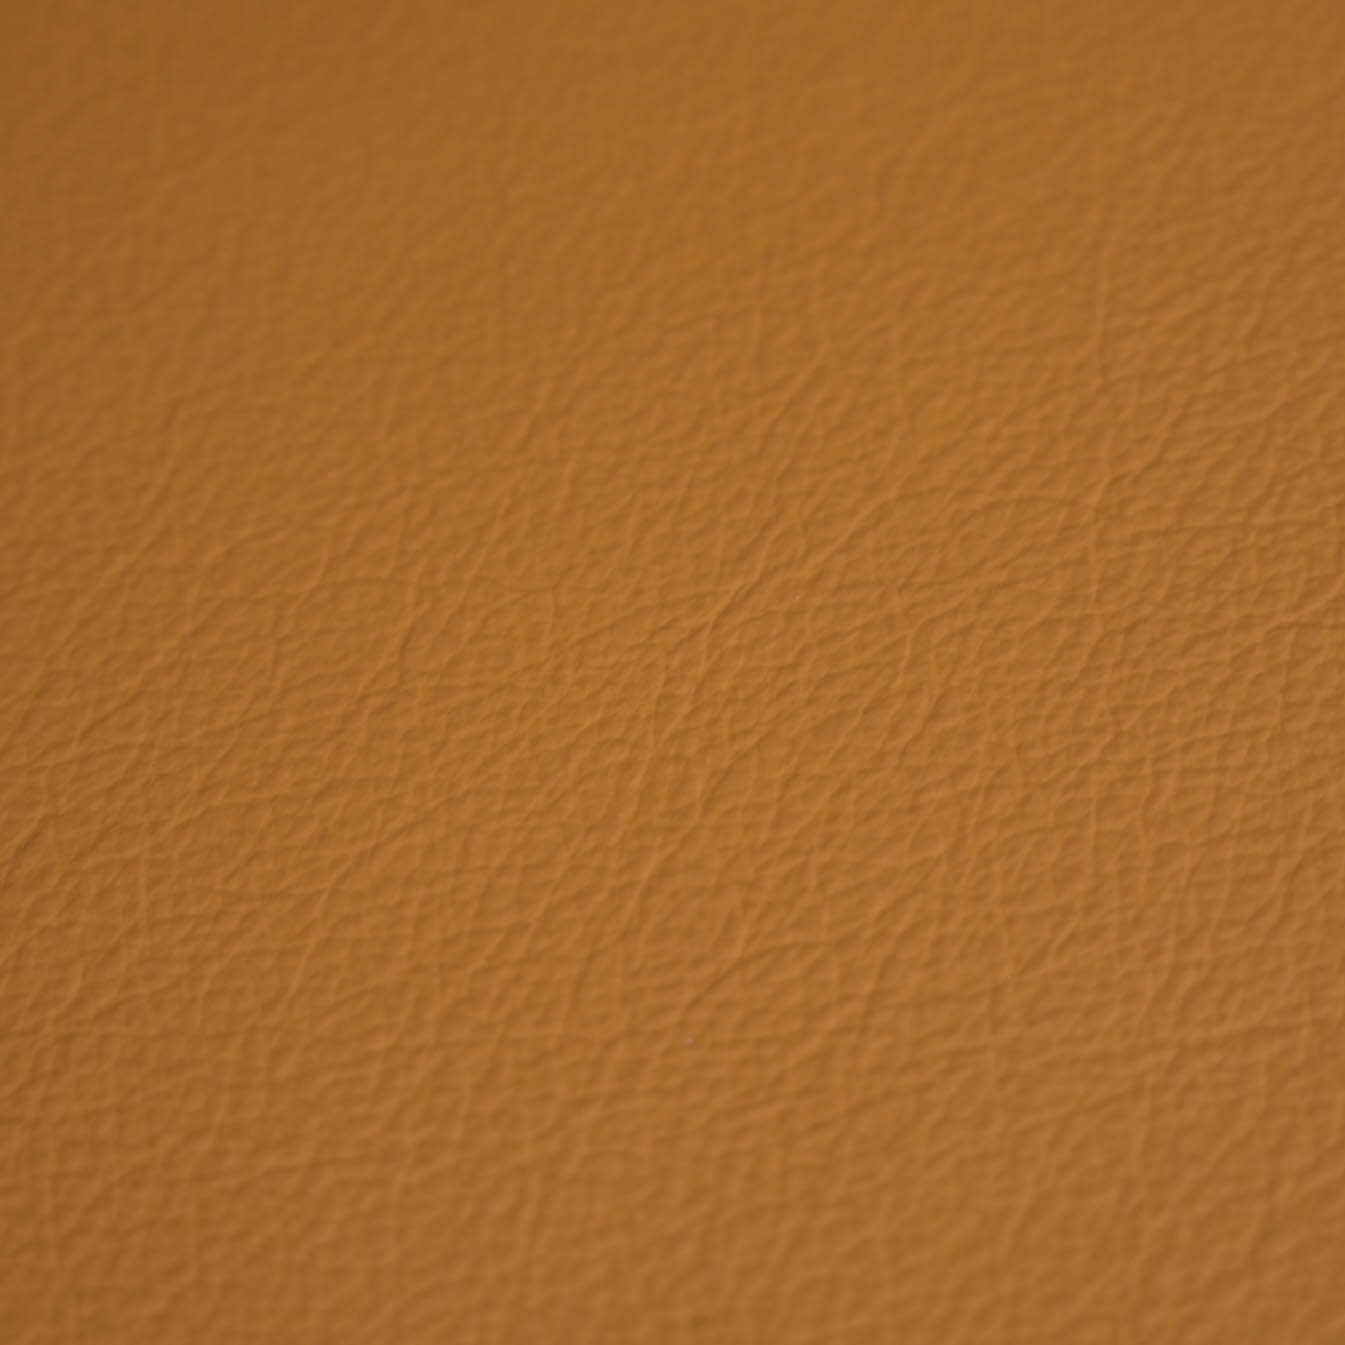 nappa leather in marigold color